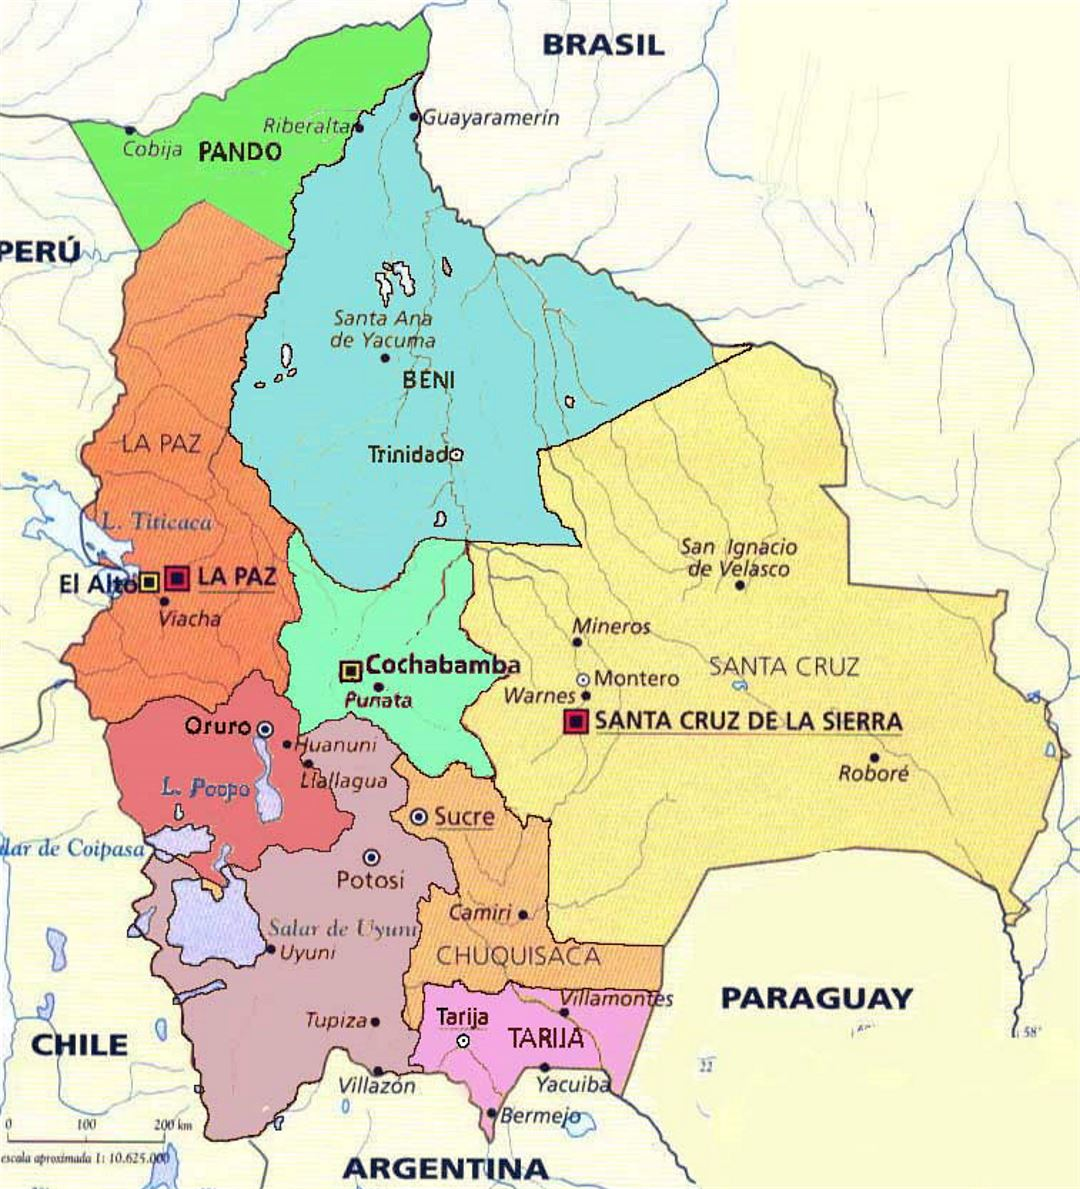 Administrative map of Bolivia with major cities | Bolivia ... on peru map, colombia map, antigua map, croatia map, algeria map, eritrea map, americas map, angola map, la paz map, mexico map, cameroon map, tahiti map, argentina map, buenos aires map, czech republic map, bosnia map, uae map, canada map, ecuador map, cuba map, brazil map, aruba map, egypt map, el salvador map, oman map, world map, chile map, japan map, andes mountains map, austria map, benin map, trinidad map, china map, spain map, bulgaria map,